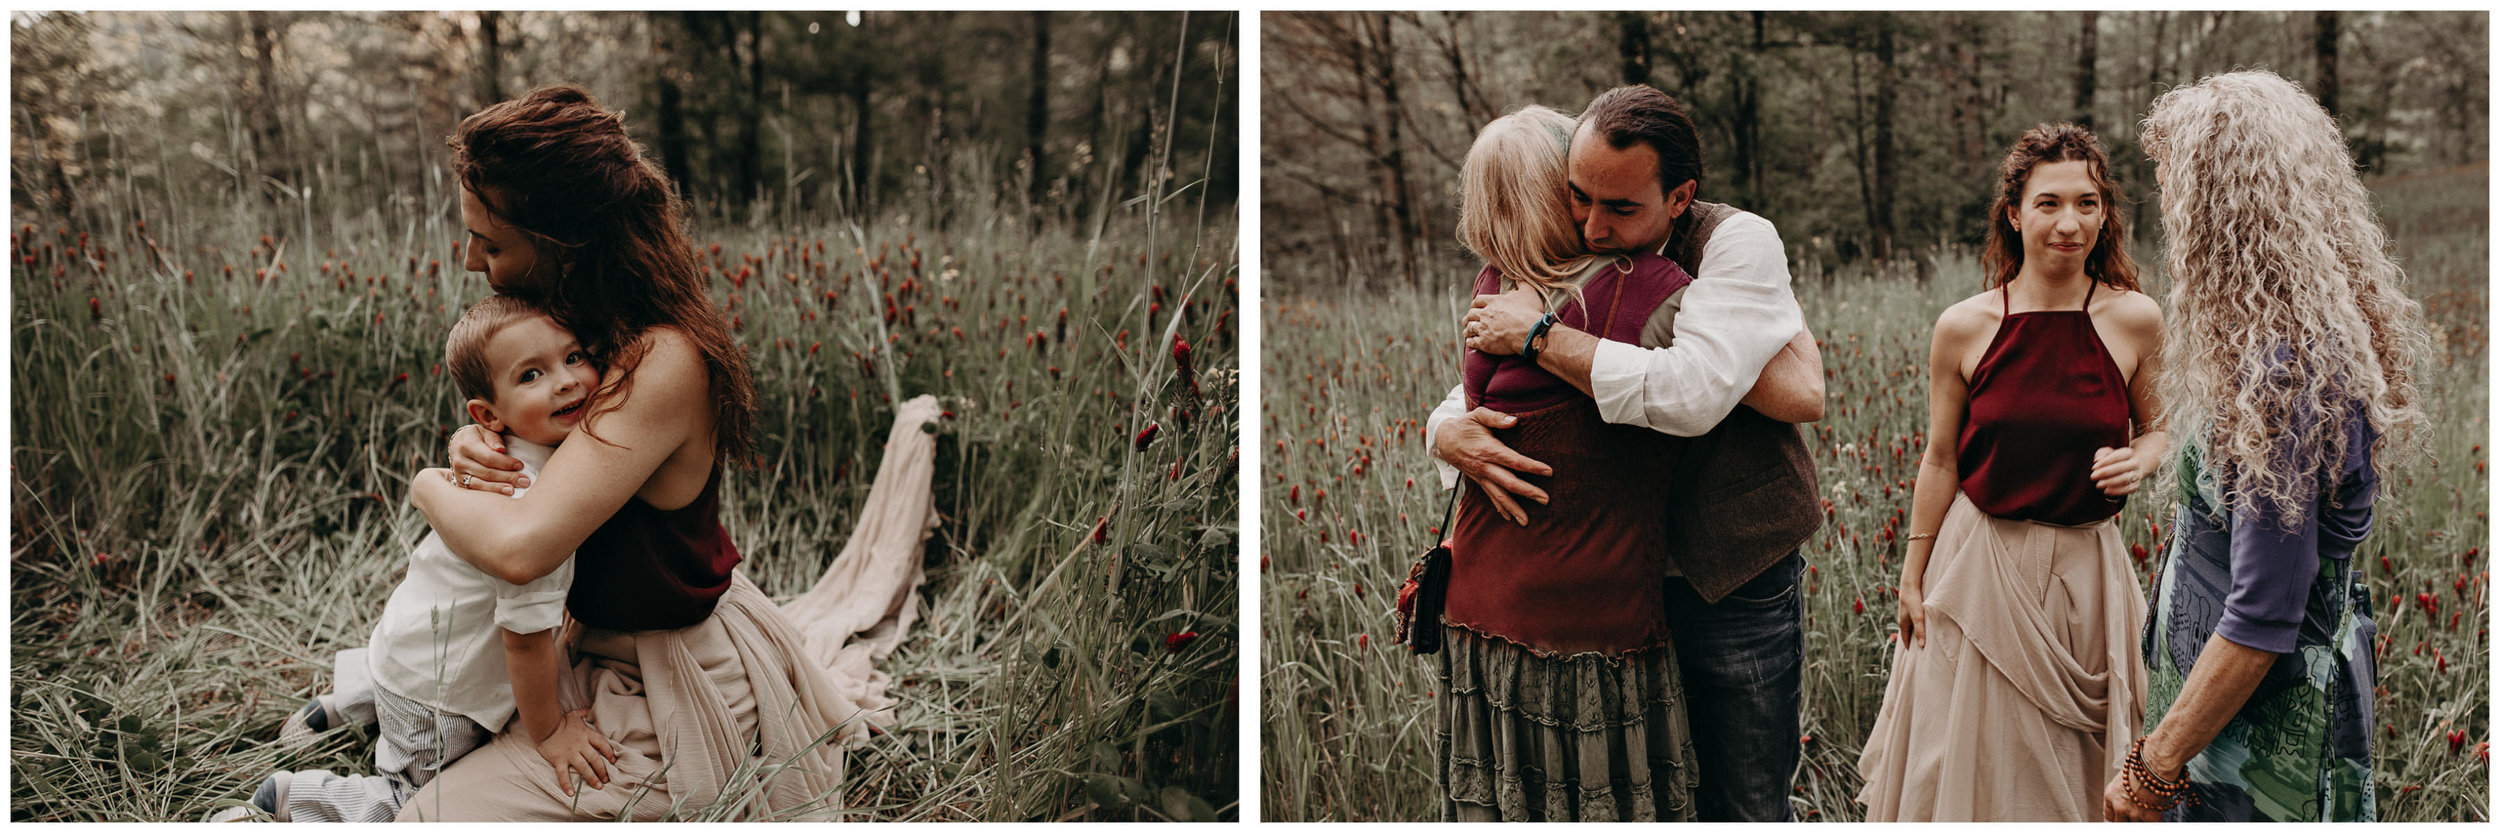 78- Forest wedding boho enchanched fairytale wedding atlanta - ga , intimate, elopement, nature, greens, good vibes. Aline Marin Photography .jpg